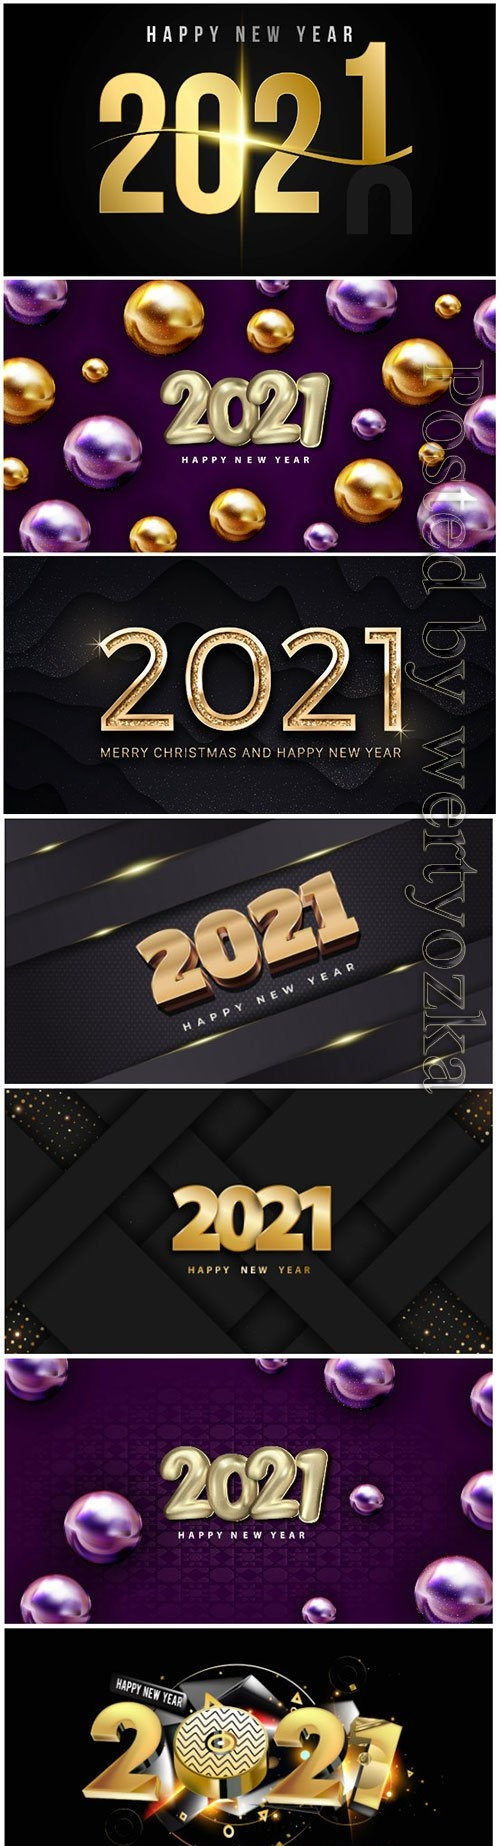 Merry christmas and happy new year luxury golden elegant text